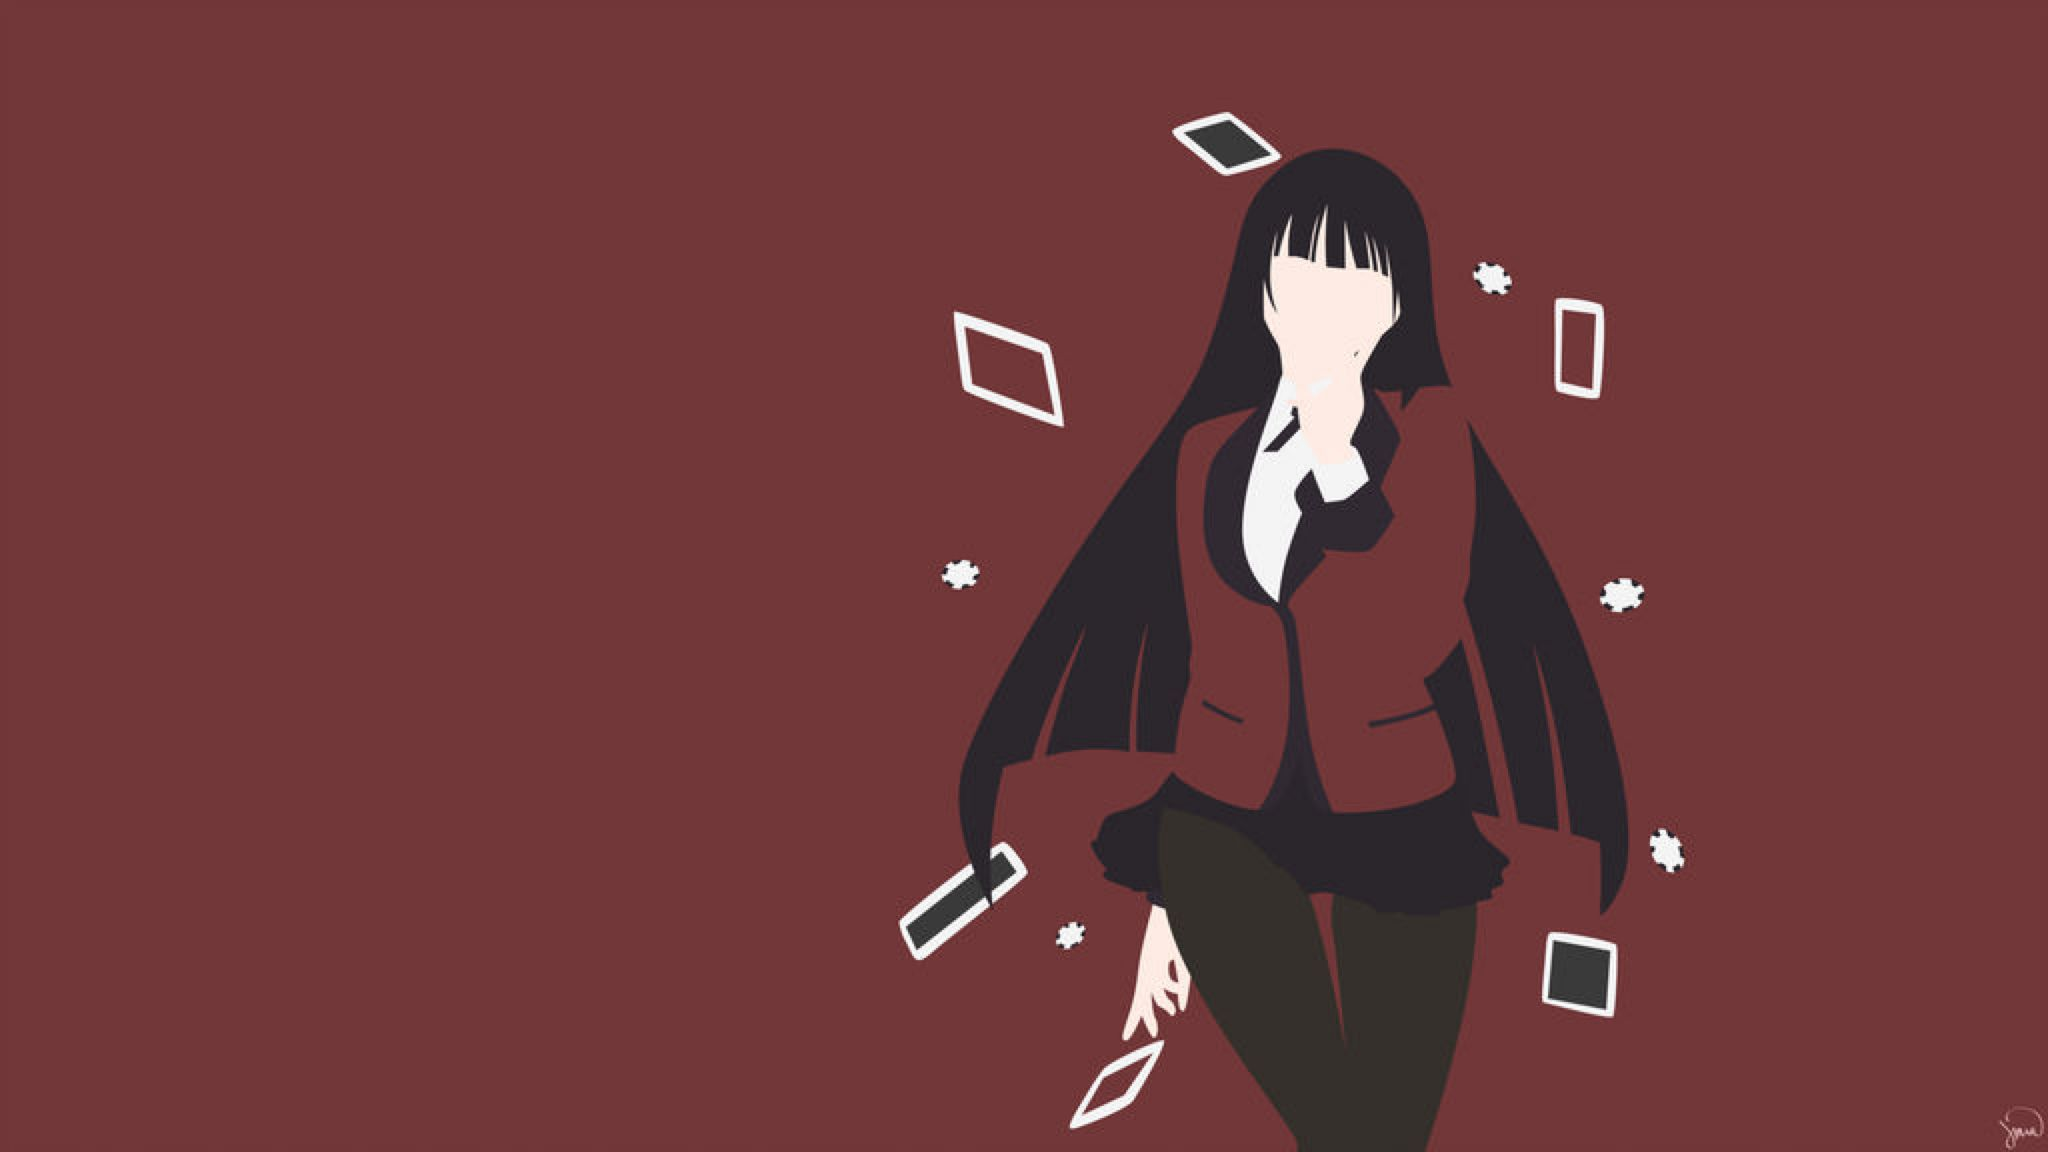 Yumeko Jabami Kakegurui By Greenmapple17 On Deviantart Wallpaper Pc Anime Anime Wallpaper Wallpaper Pc